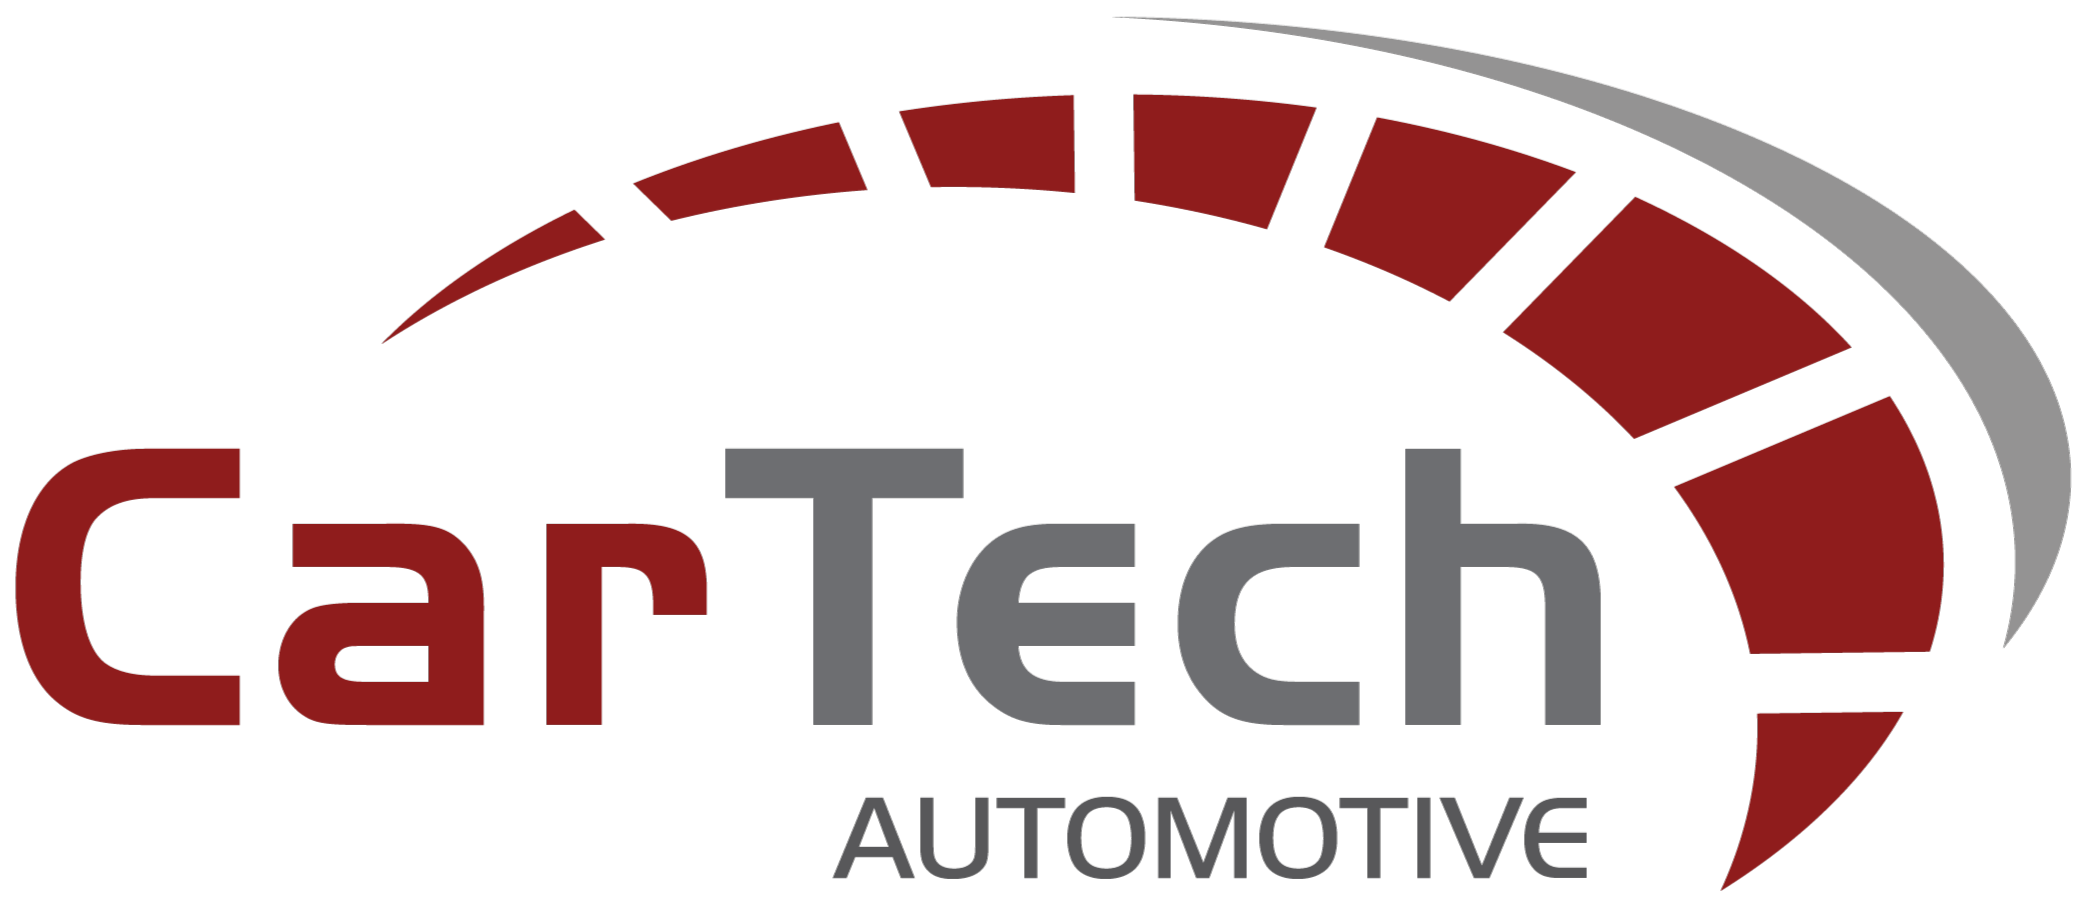 Cartech Automotive